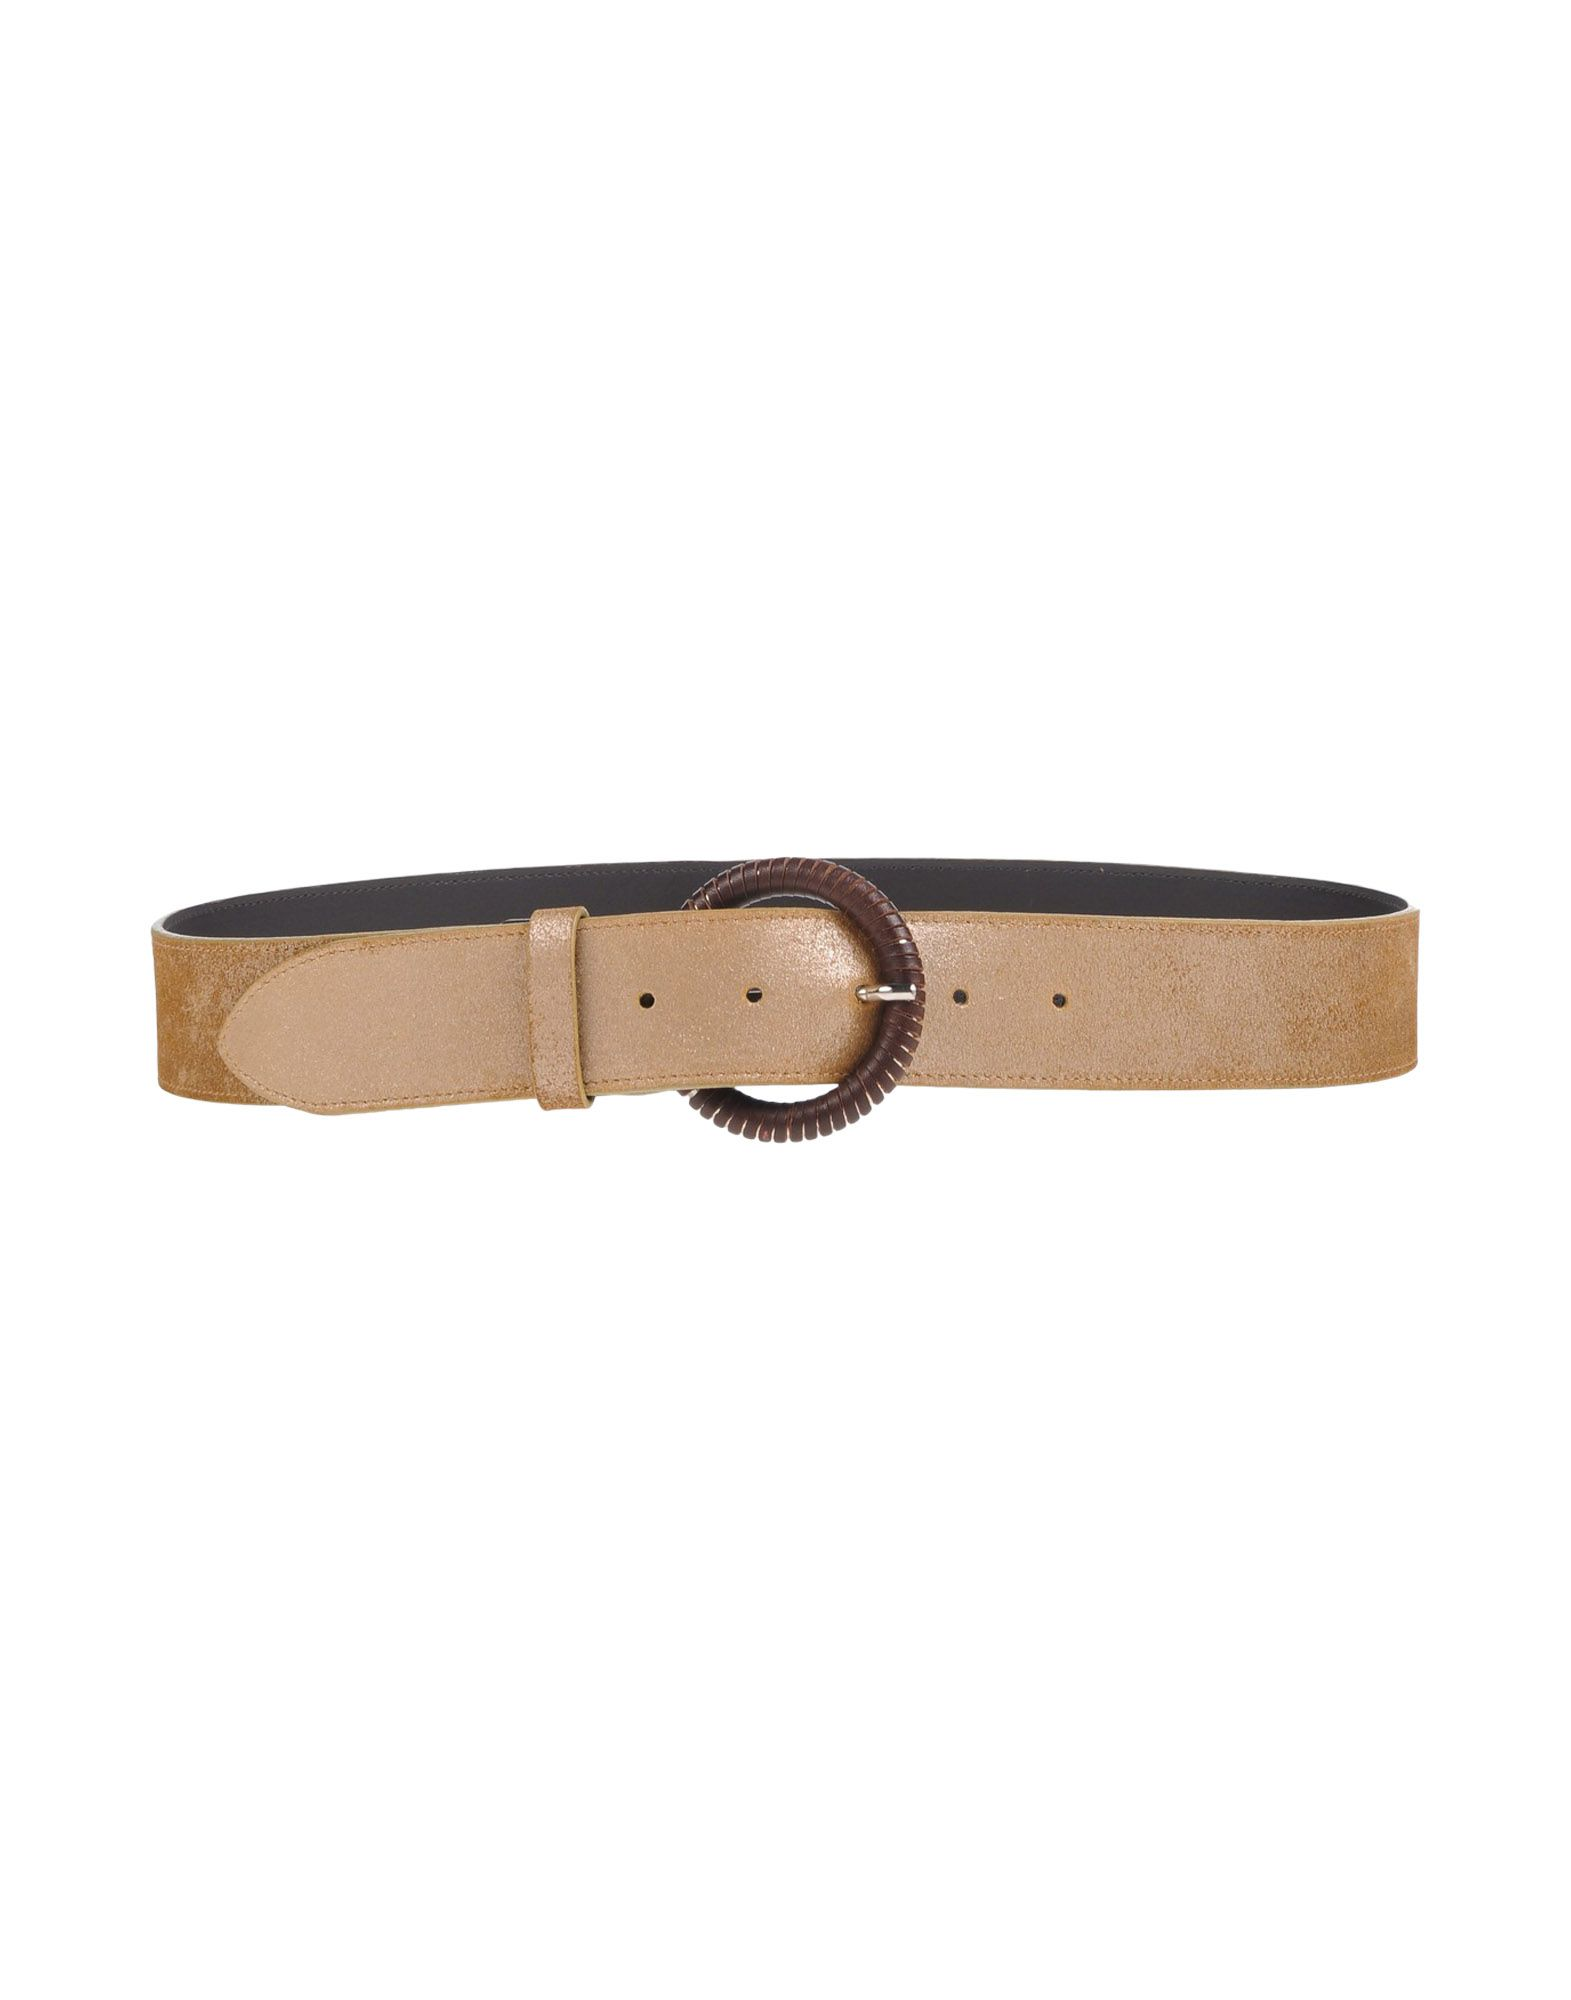 ORCIANI | ORCIANI Belts 46501411 | Goxip